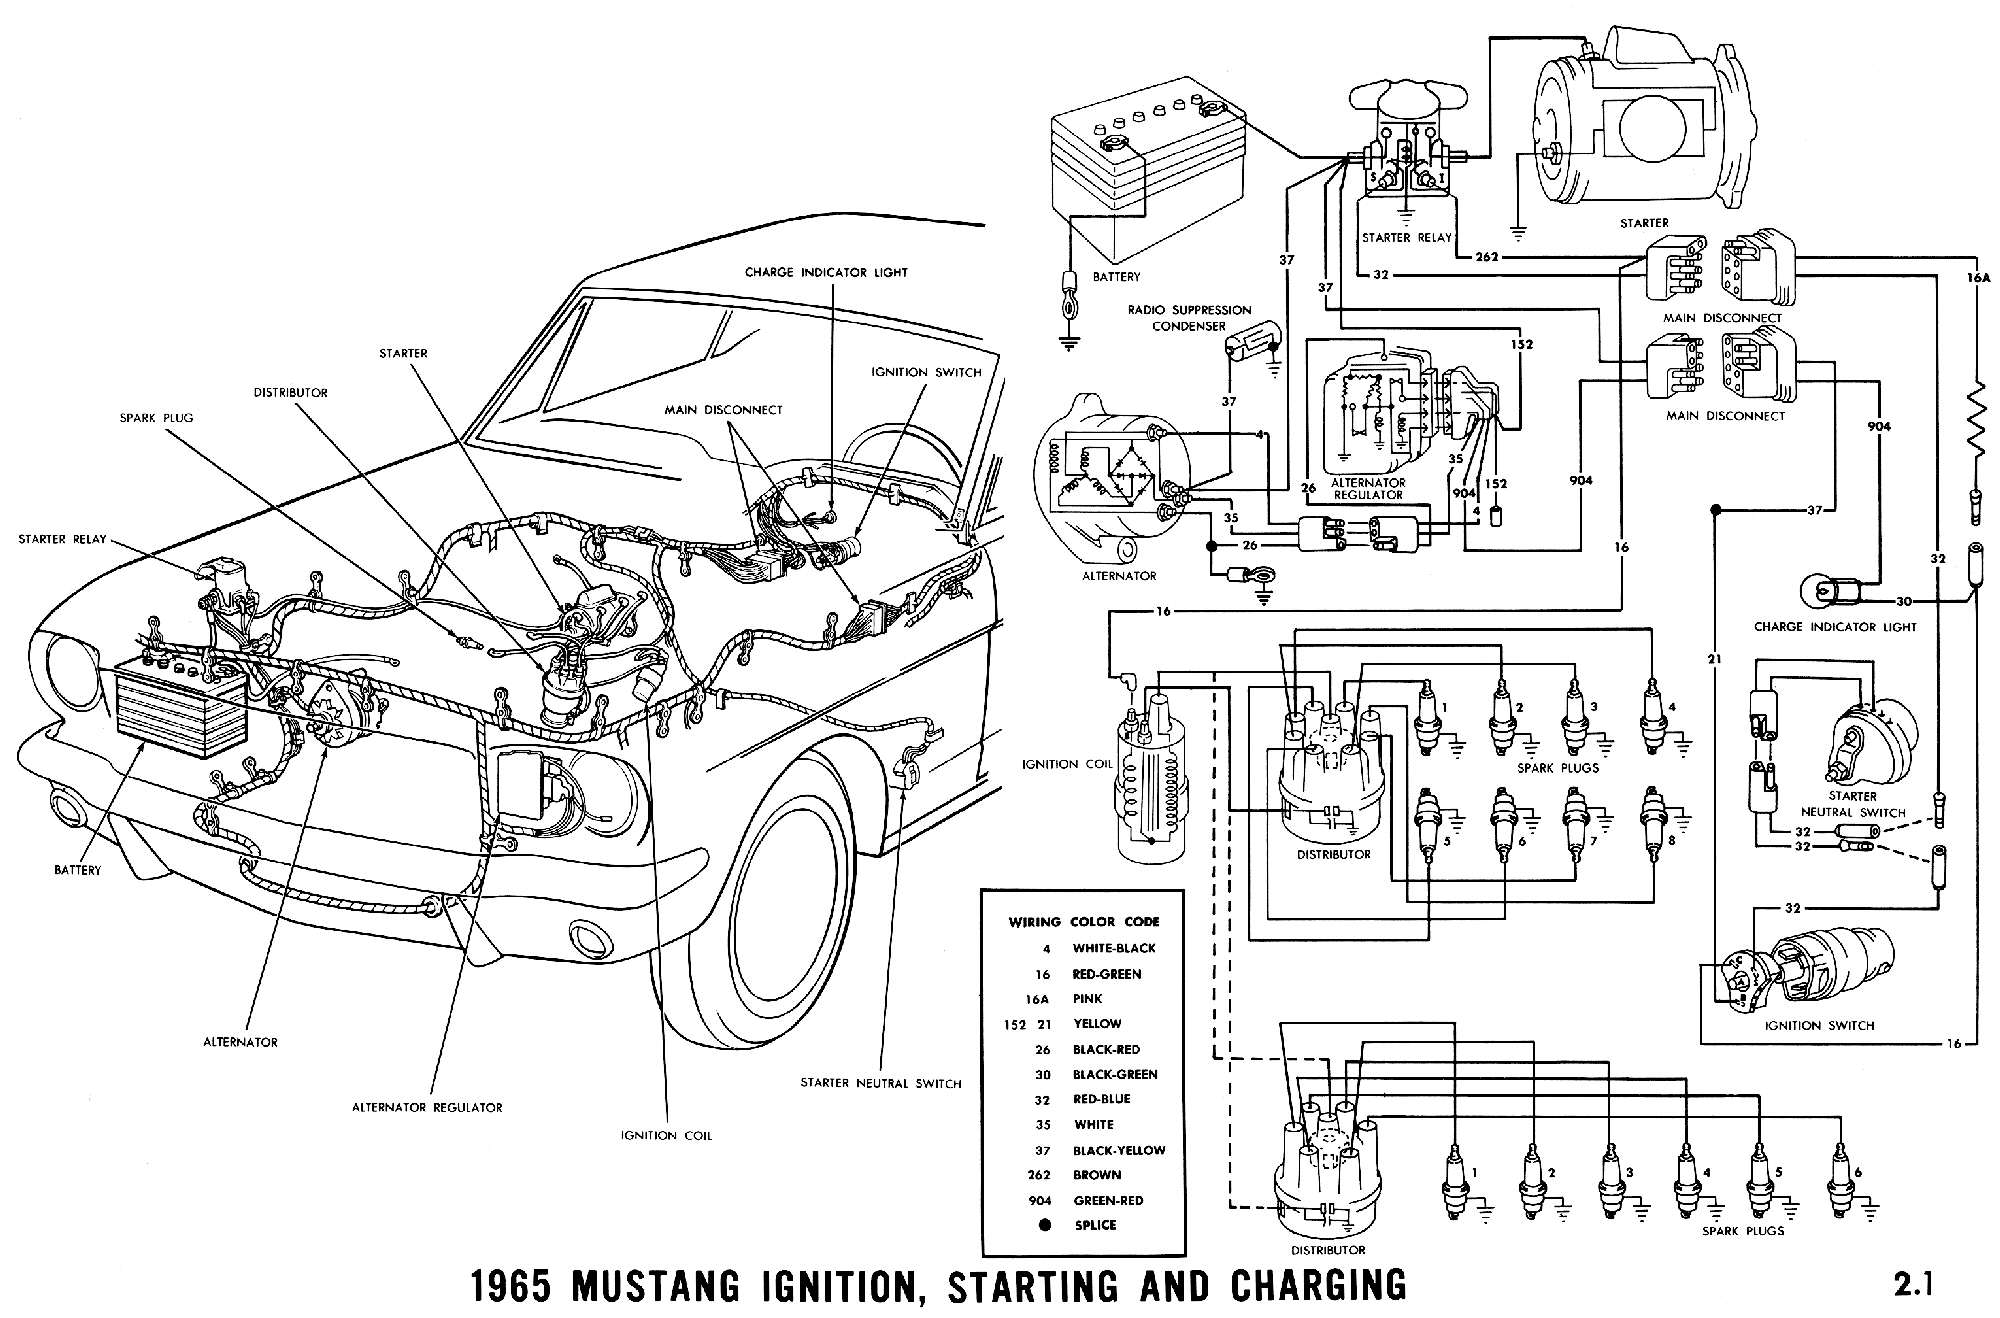 1965c 1965 mustang wiring diagrams average joe restoration 1966 mustang headlight wiring diagram at n-0.co